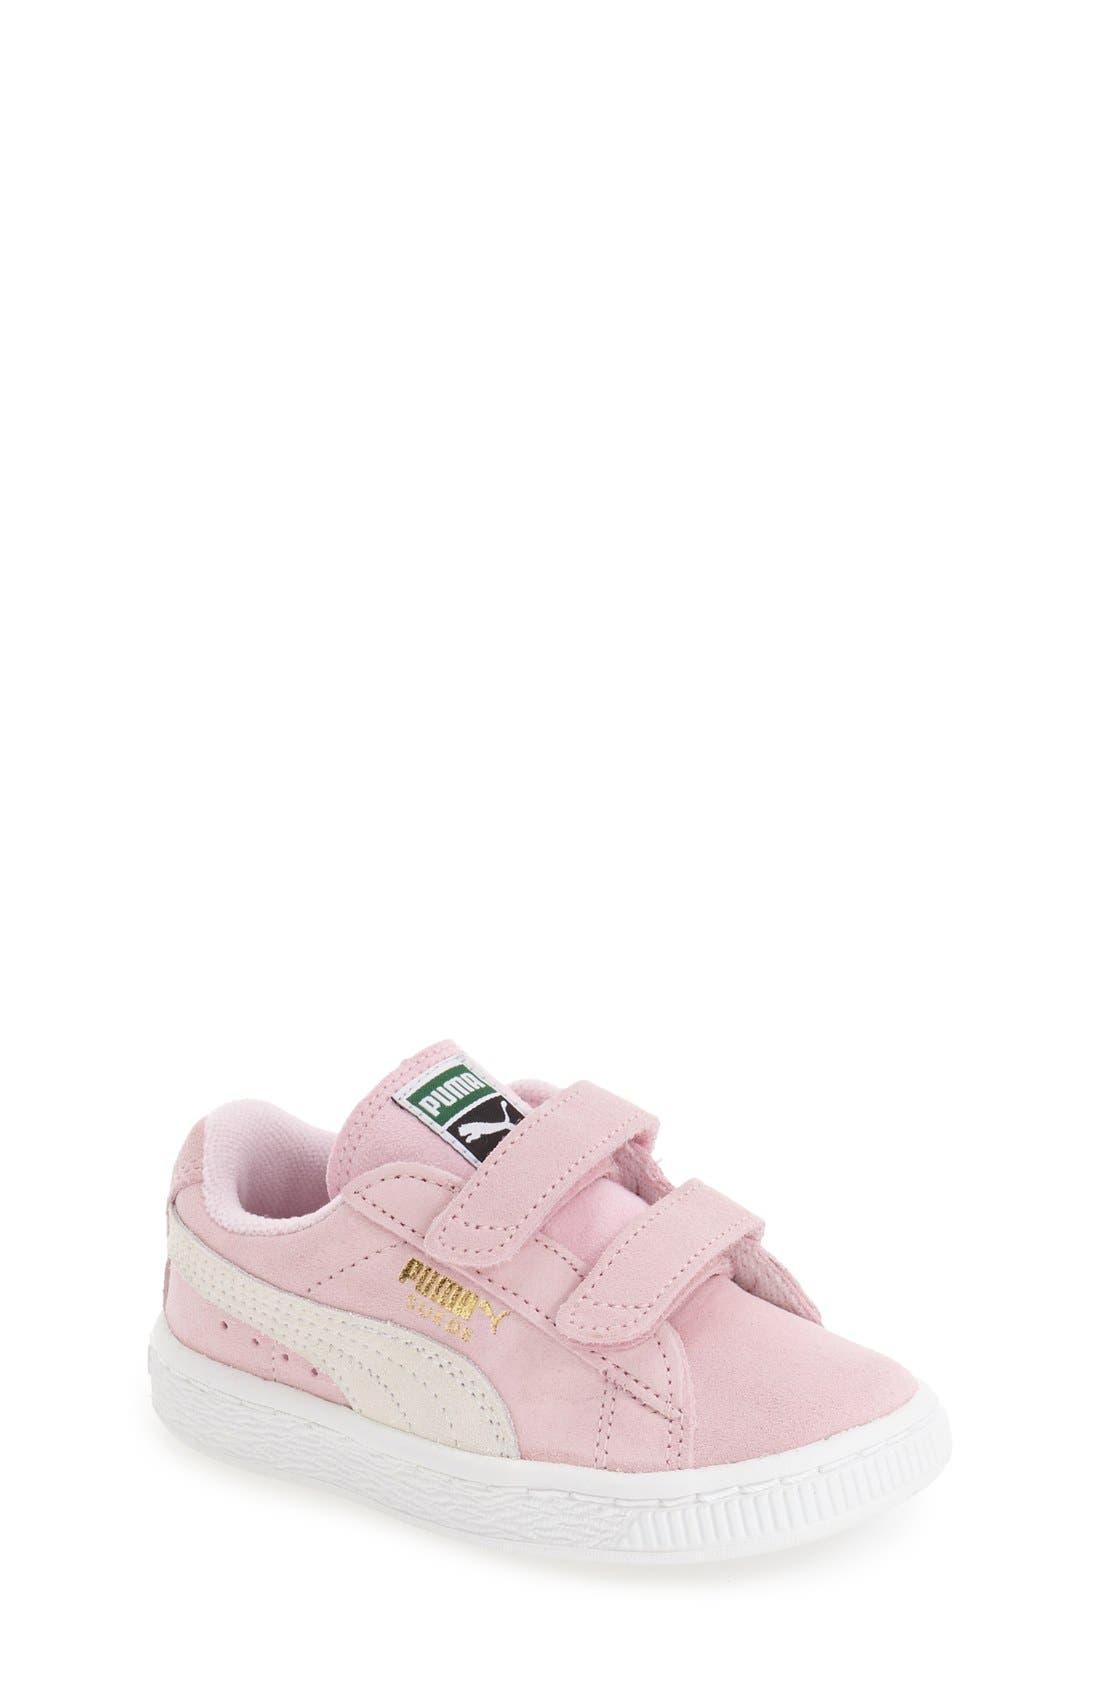 Suede Sneaker,                         Main,                         color, Pink Lady/ Team Gold